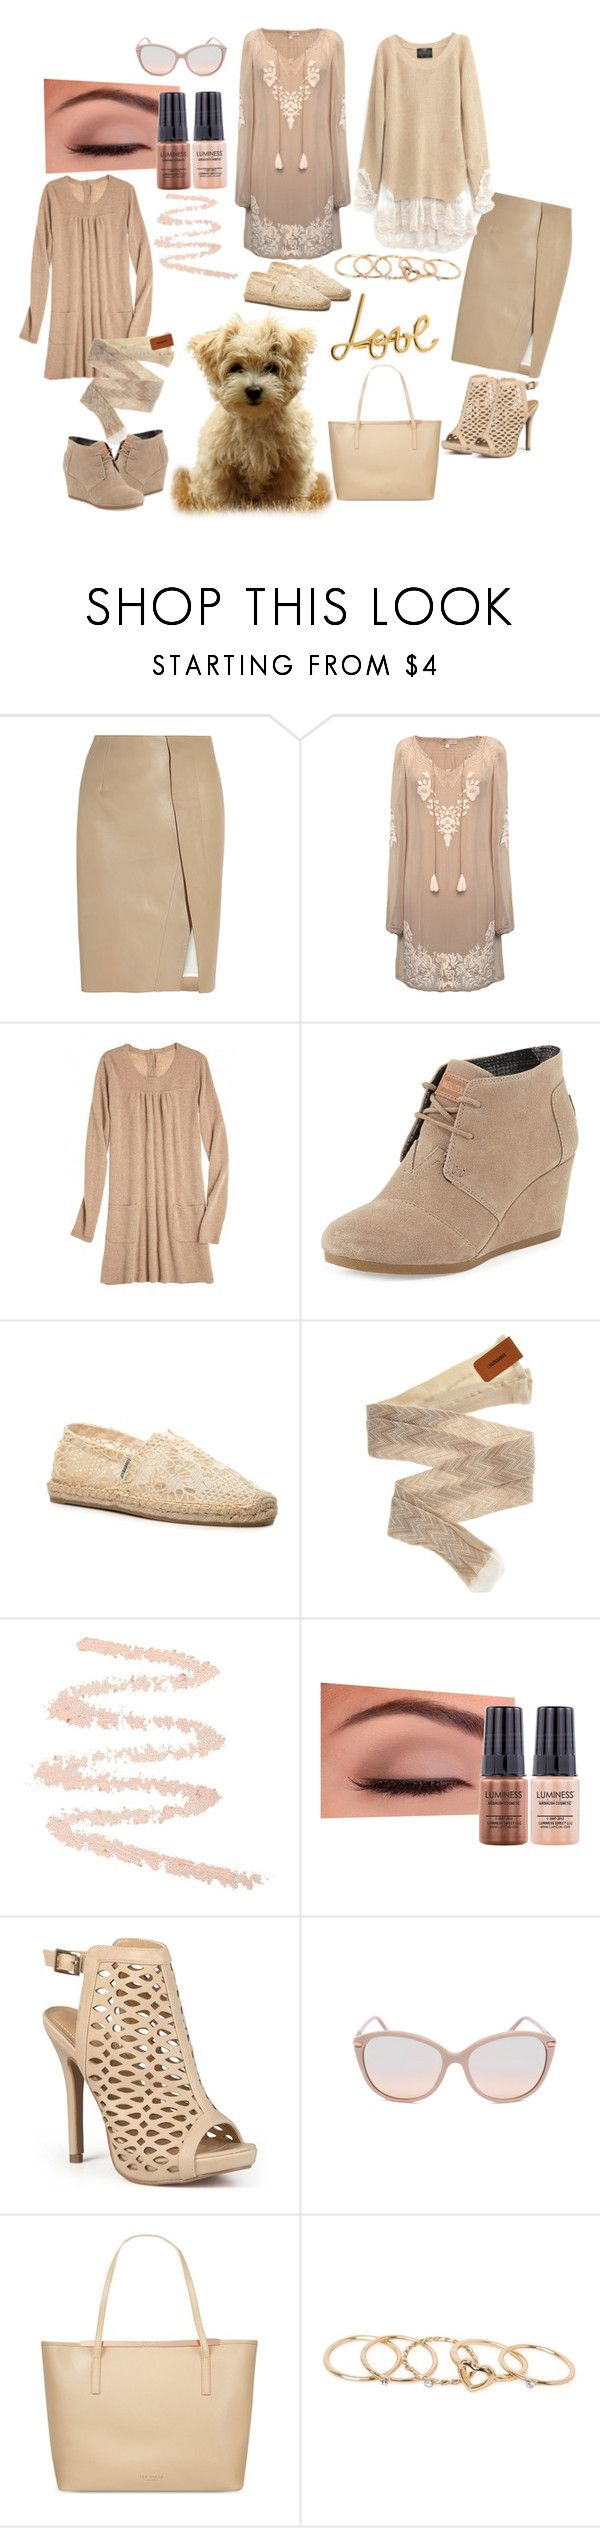 """Beige Love"" by dazzling-dazed-dayz ❤ liked on Polyvore featuring Acne Studios, Ultimate, Gold Hawk, Calypso St. Barth, TOMS, Joy & Mario, Missoni, NYX, Luminess Air and Journee Collection"